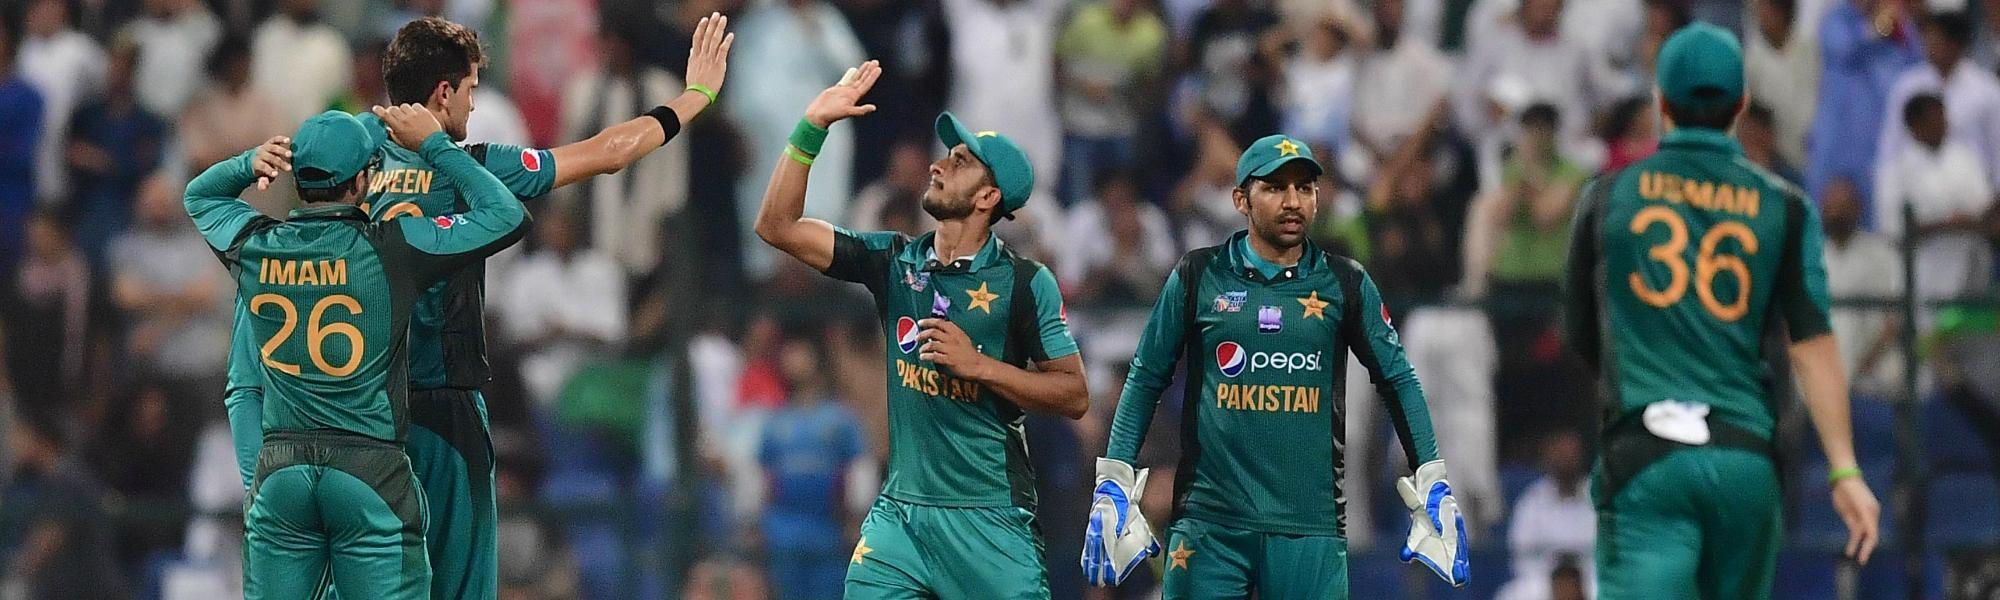 Pakistan, Bangladesh to play for final spot in Asia Cup today